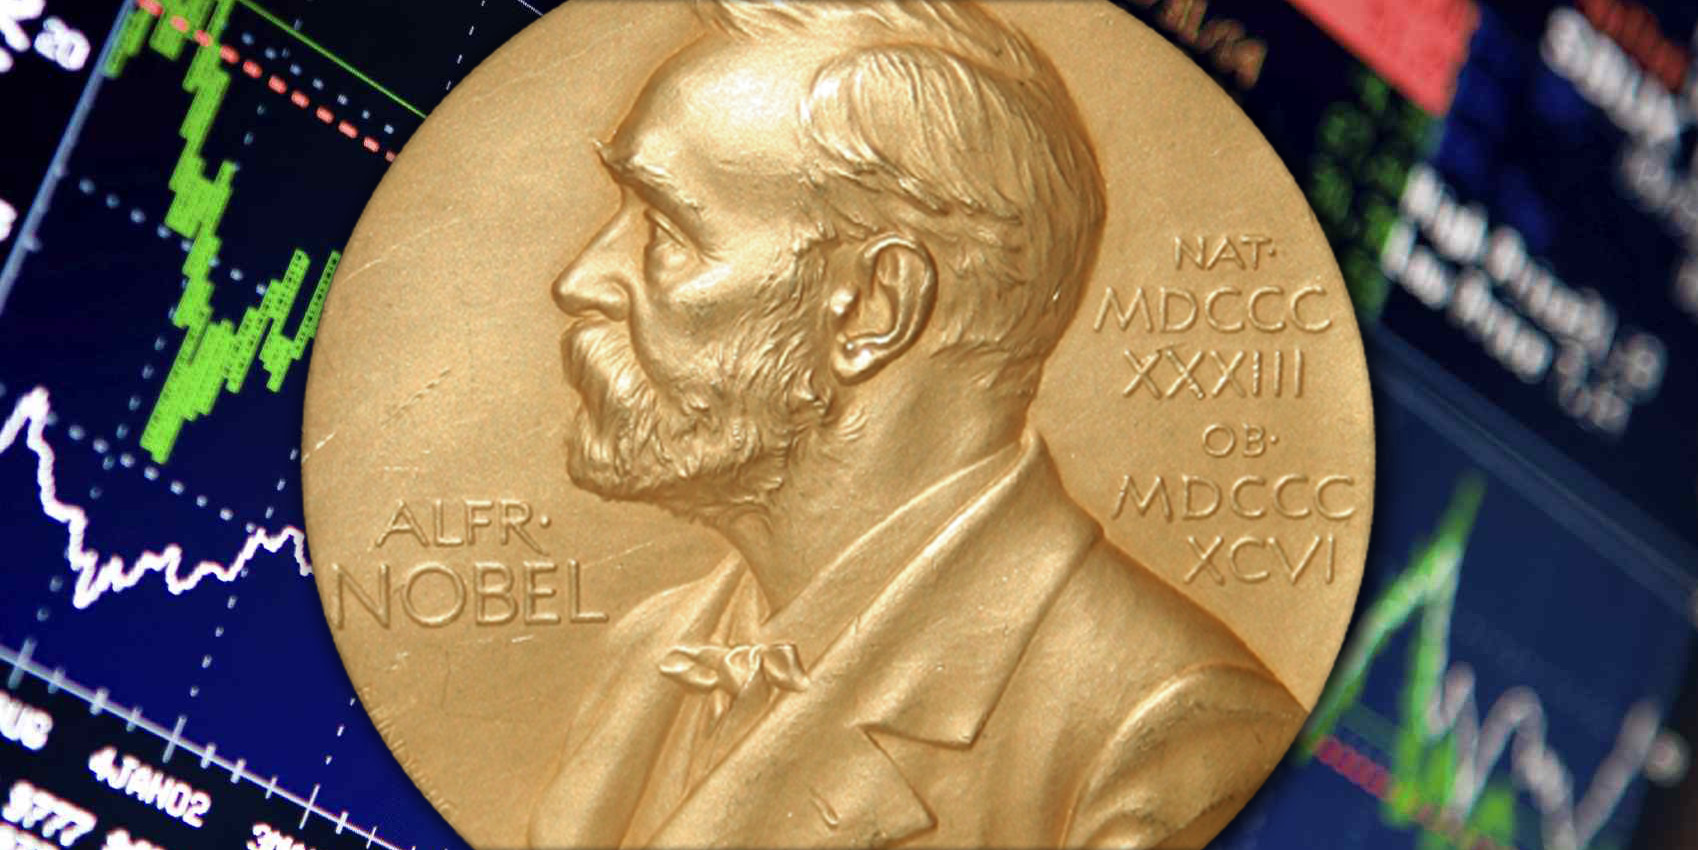 Nobel Prize facts